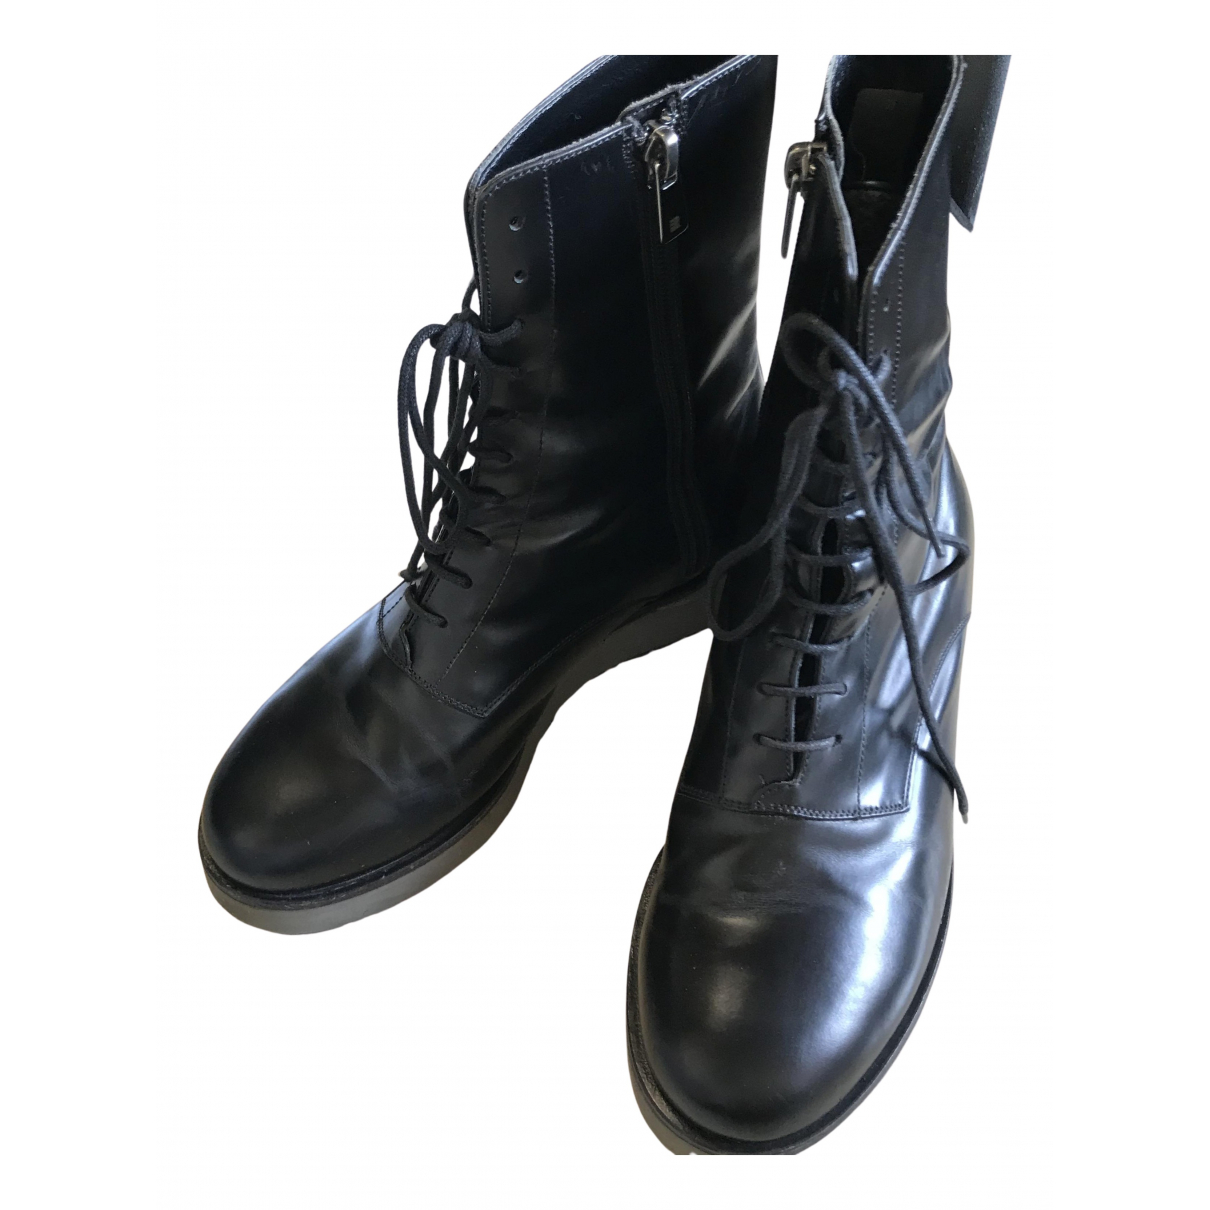 Fratelli Rossetti N Black Leather Ankle boots for Women 36 EU